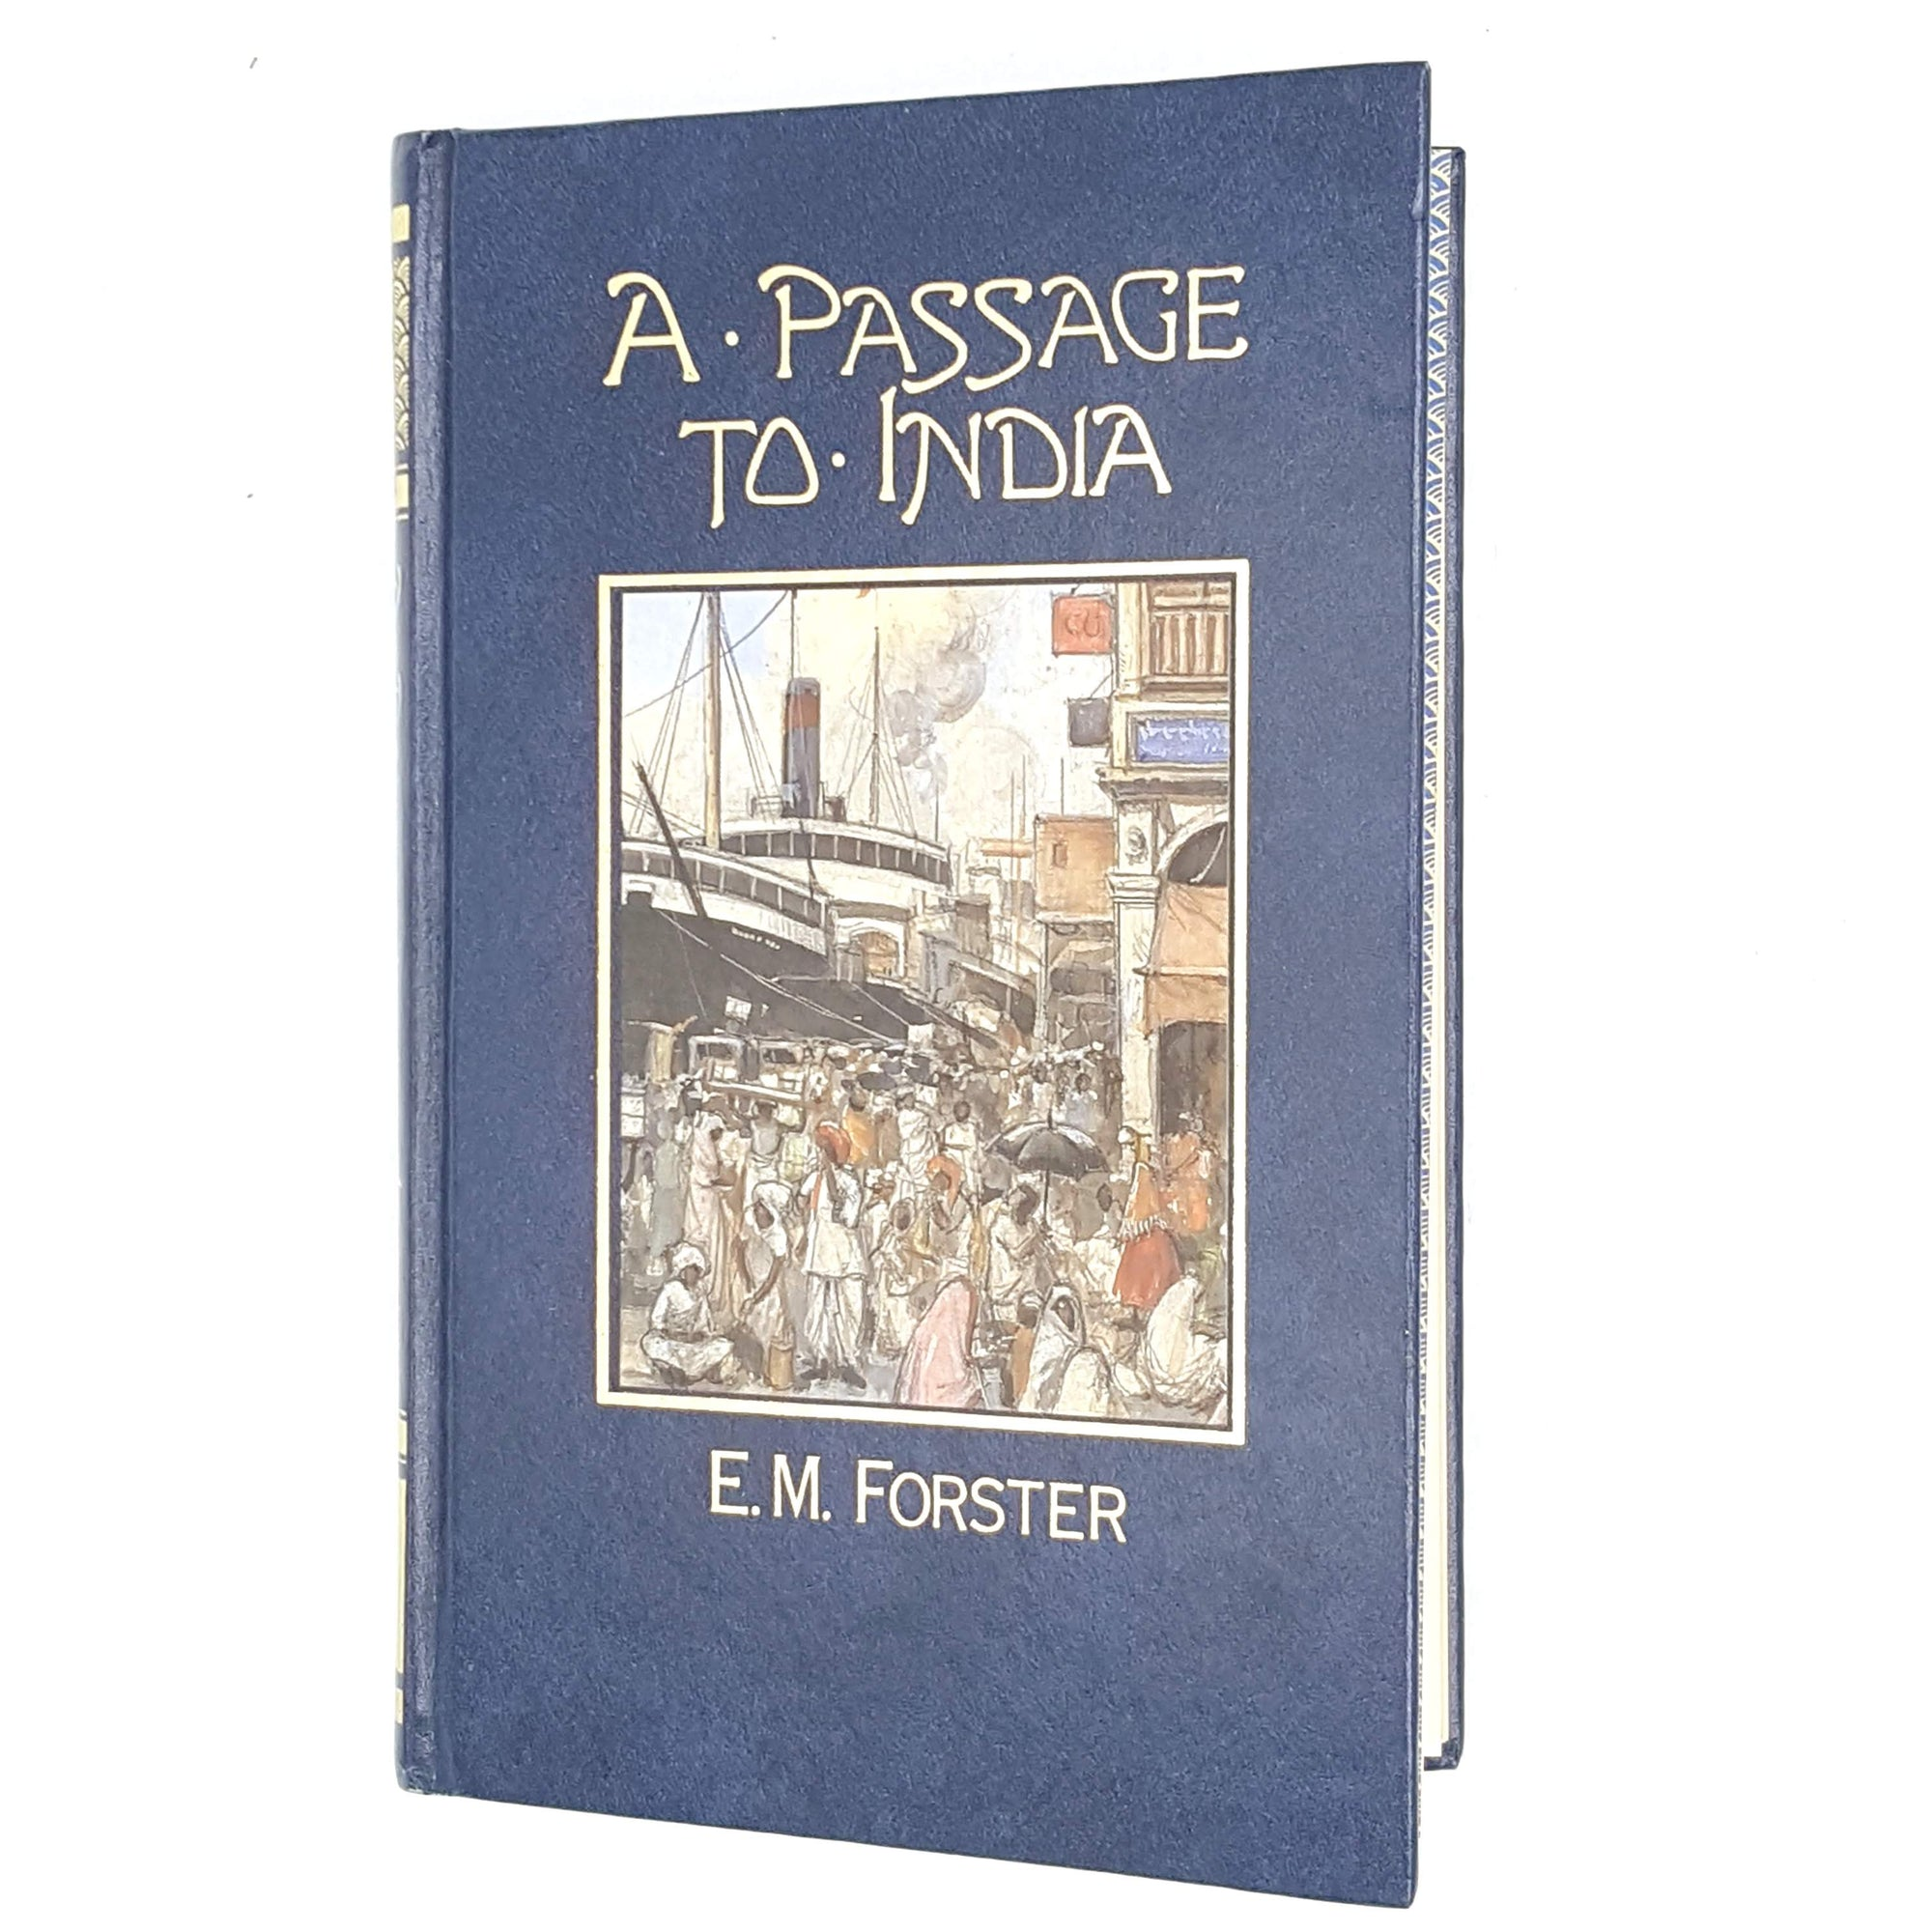 blue-decorative-classic-a-passage-to-india-thrift-books-patterned-old-marshall-cavendish-antique-country-house-library-em-forster-vintage-